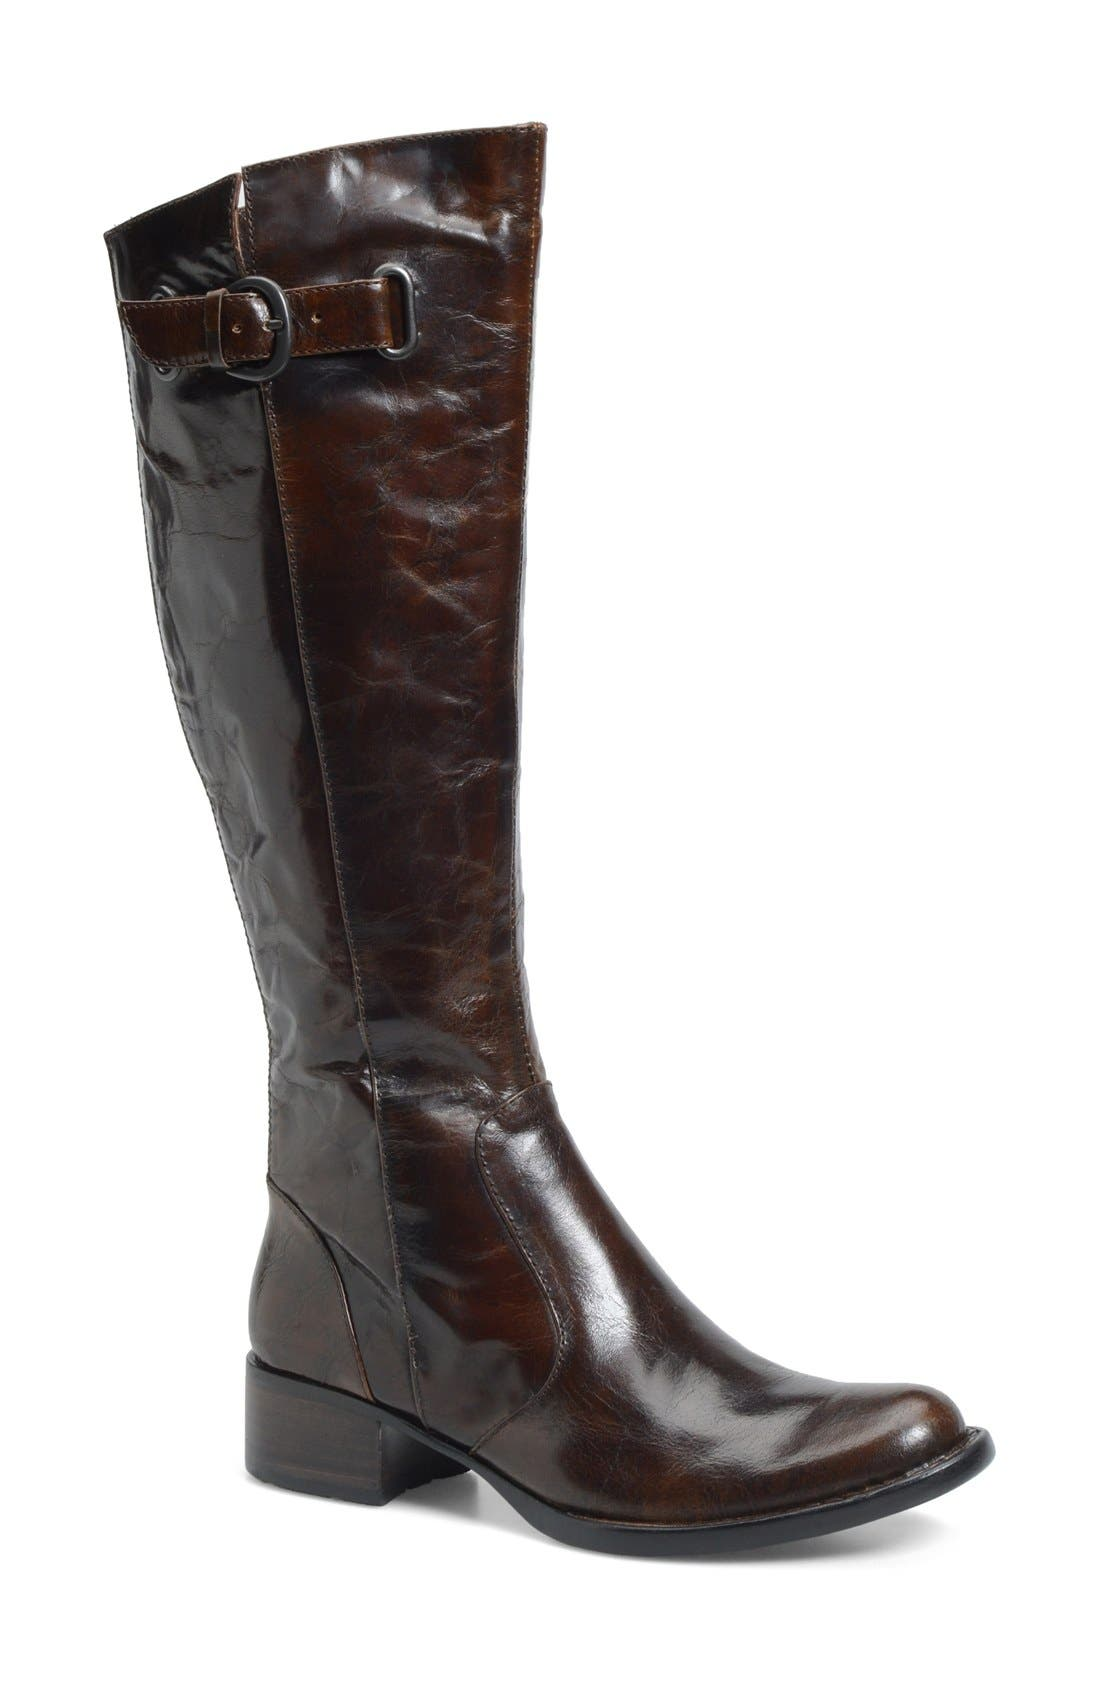 Main Image - Crown by Børn 'Roxie' Boot (Women) (Wide Calf) (Nordstrom Exclusive)